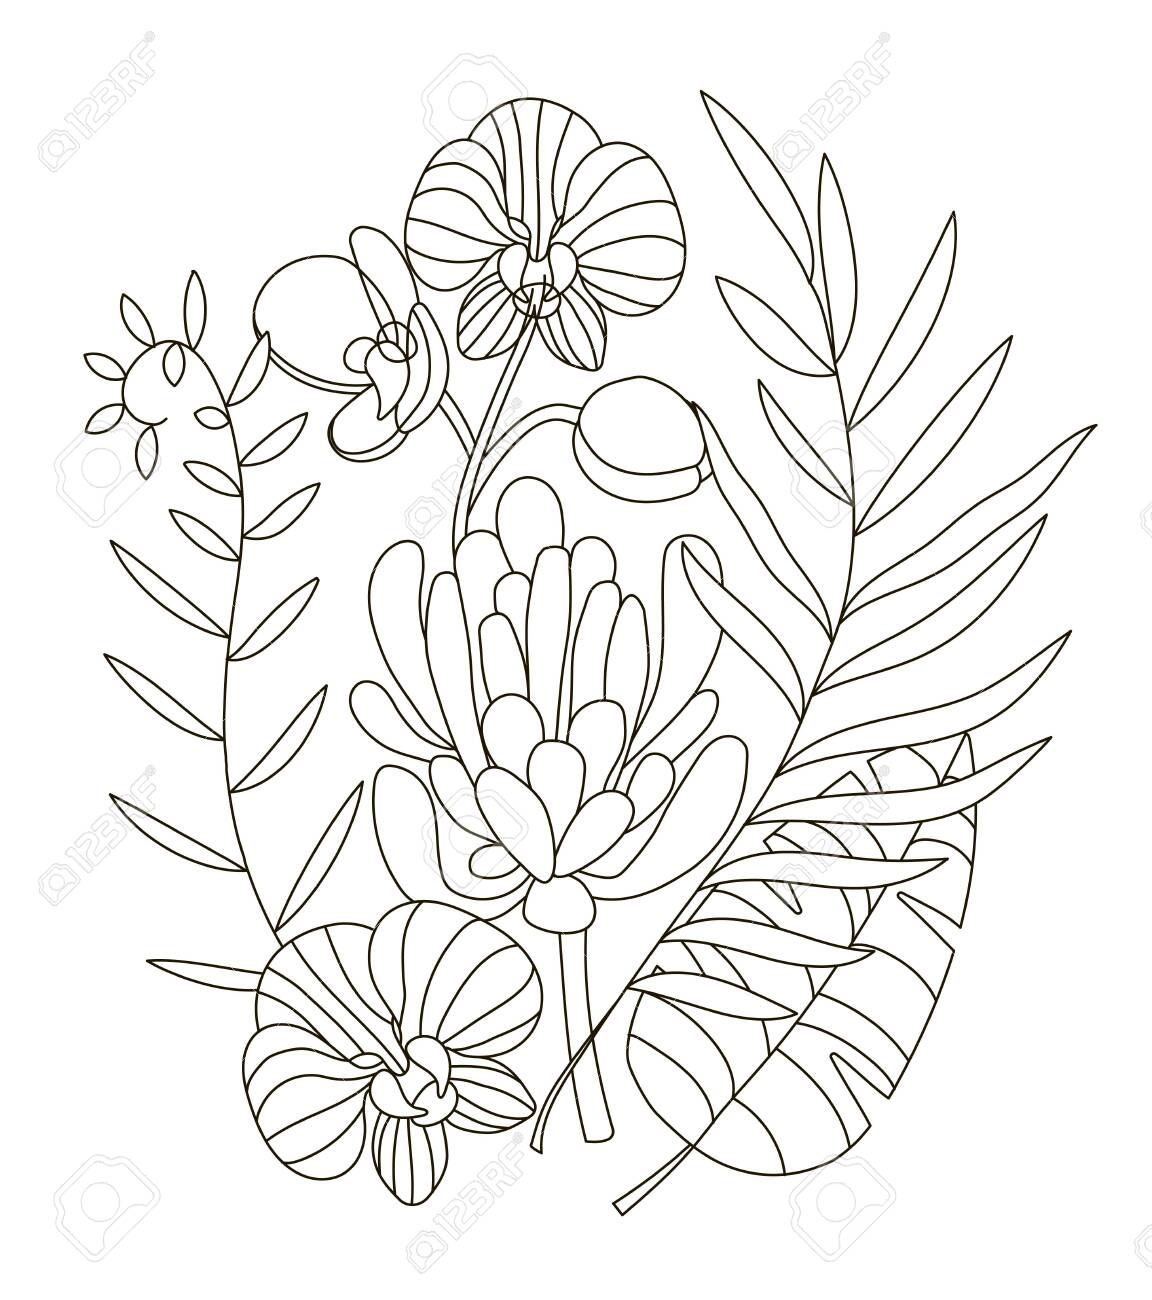 Hand Drawing Coloring Pages For Children And Adults Linear Style Royalty Free Cliparts Vectors And Stock Illustration Image 138297907 Select from 32066 printable crafts of cartoons, nature, animals, bible and many more. hand drawing coloring pages for children and adults linear style